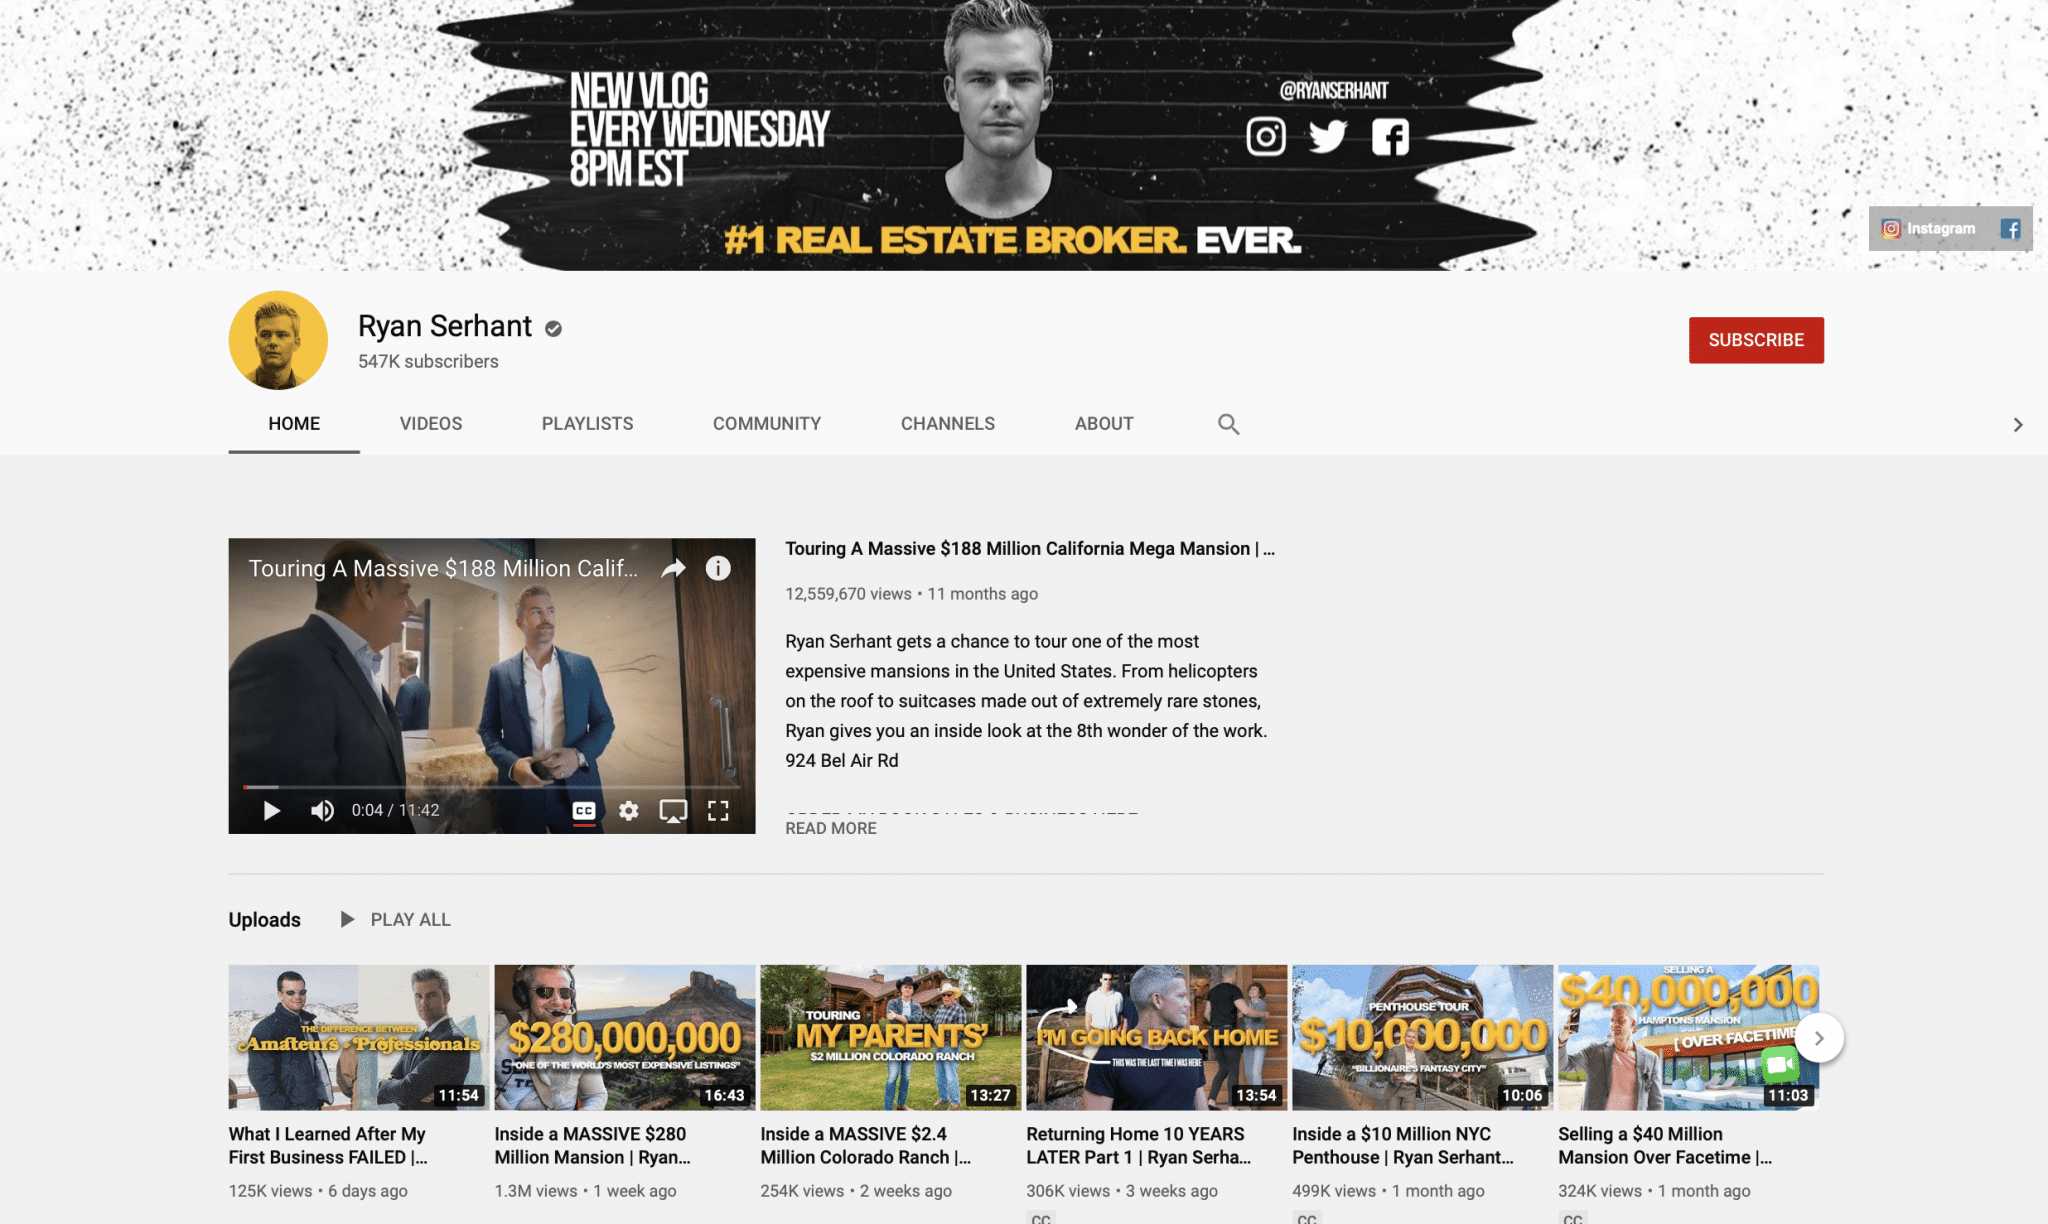 YouTube for brand building